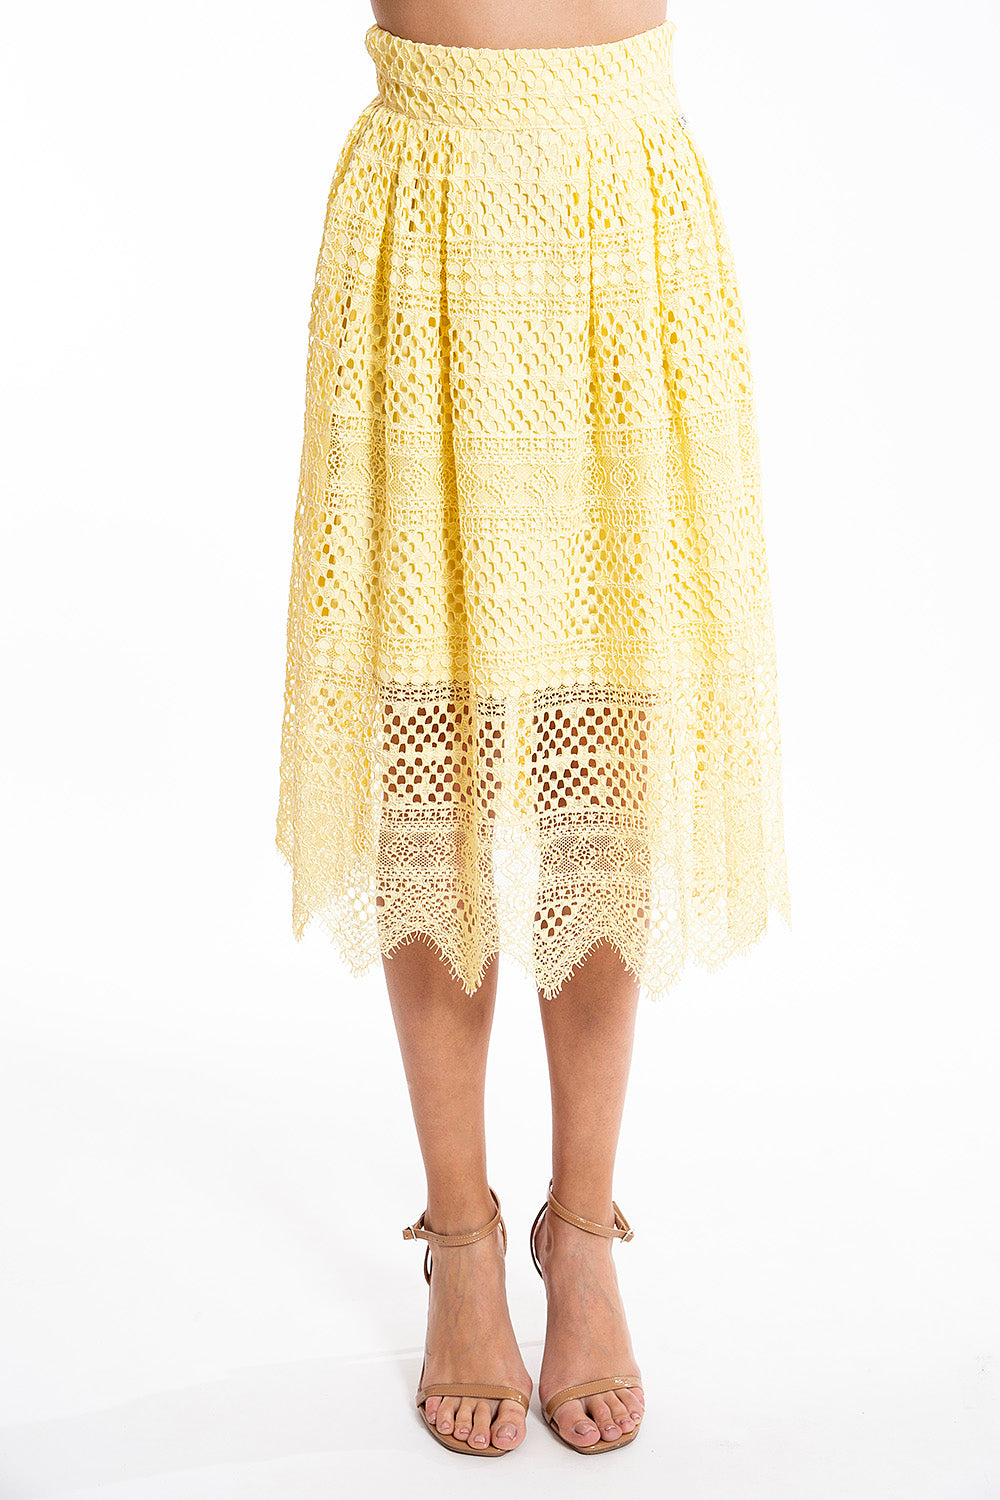 Josh V lace co-ord midi skirt